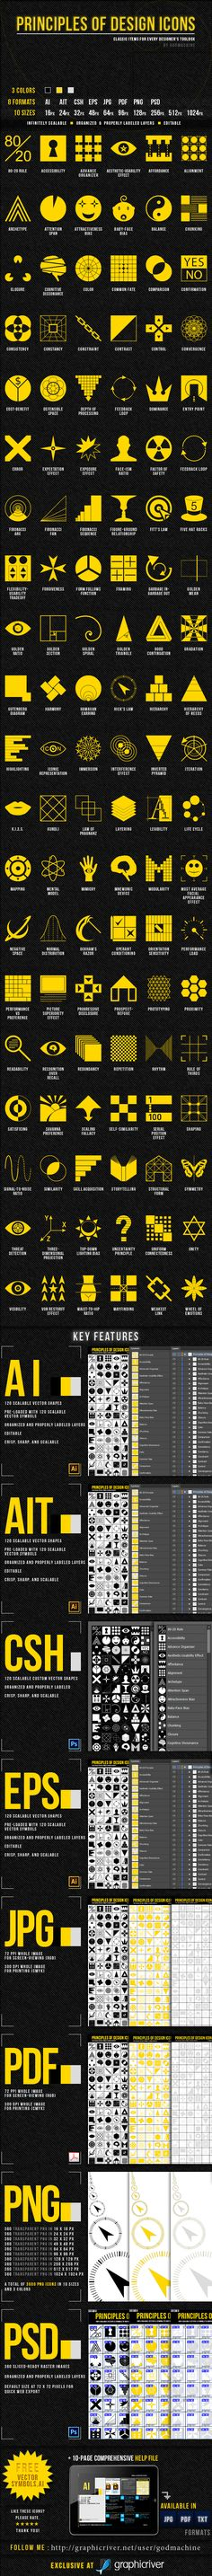 Principles of Design Icons on Behance